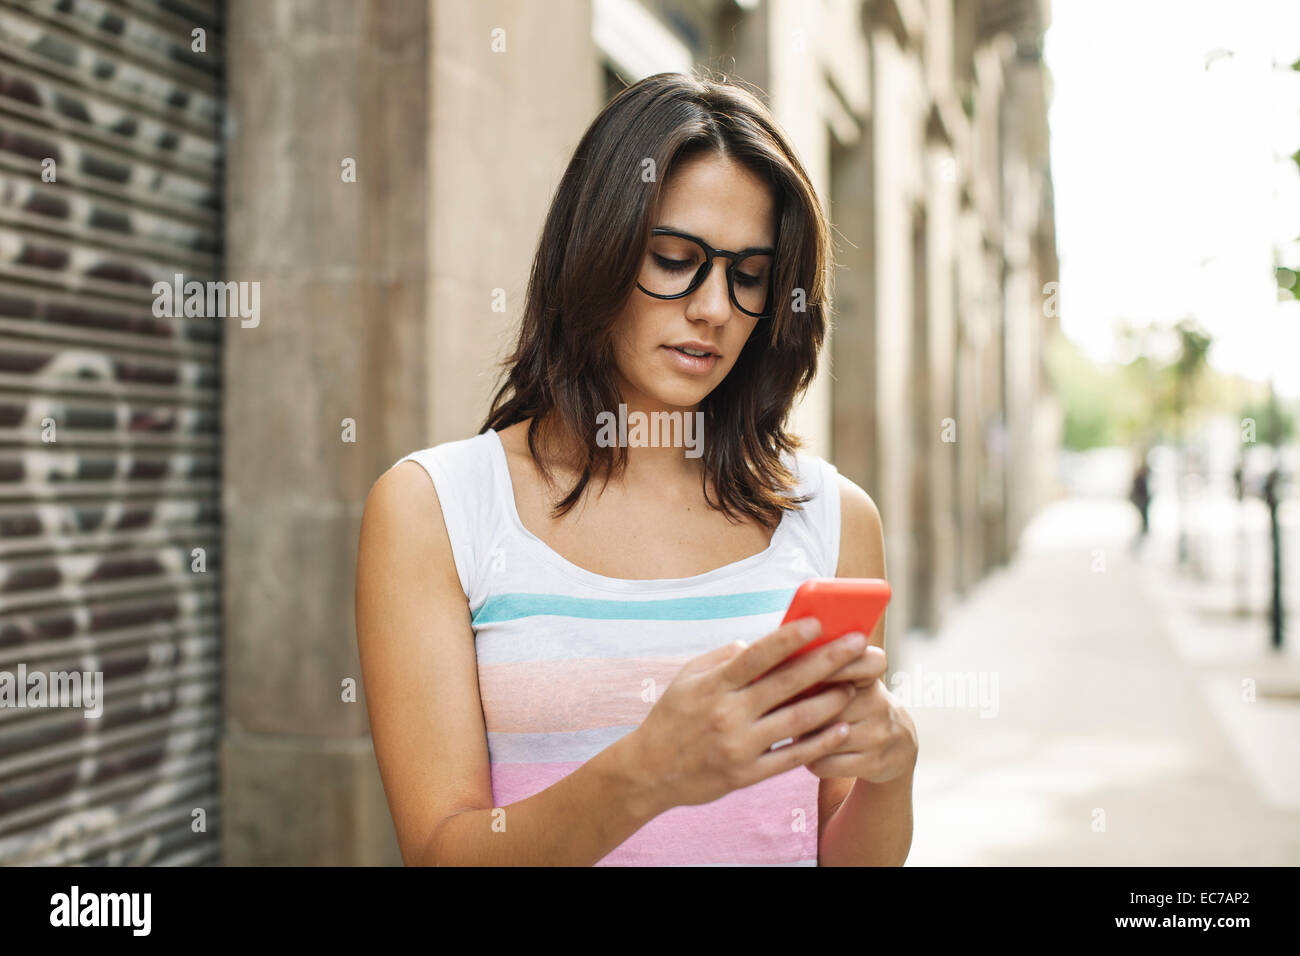 Young woman with smartphone reading SMS - Stock Image